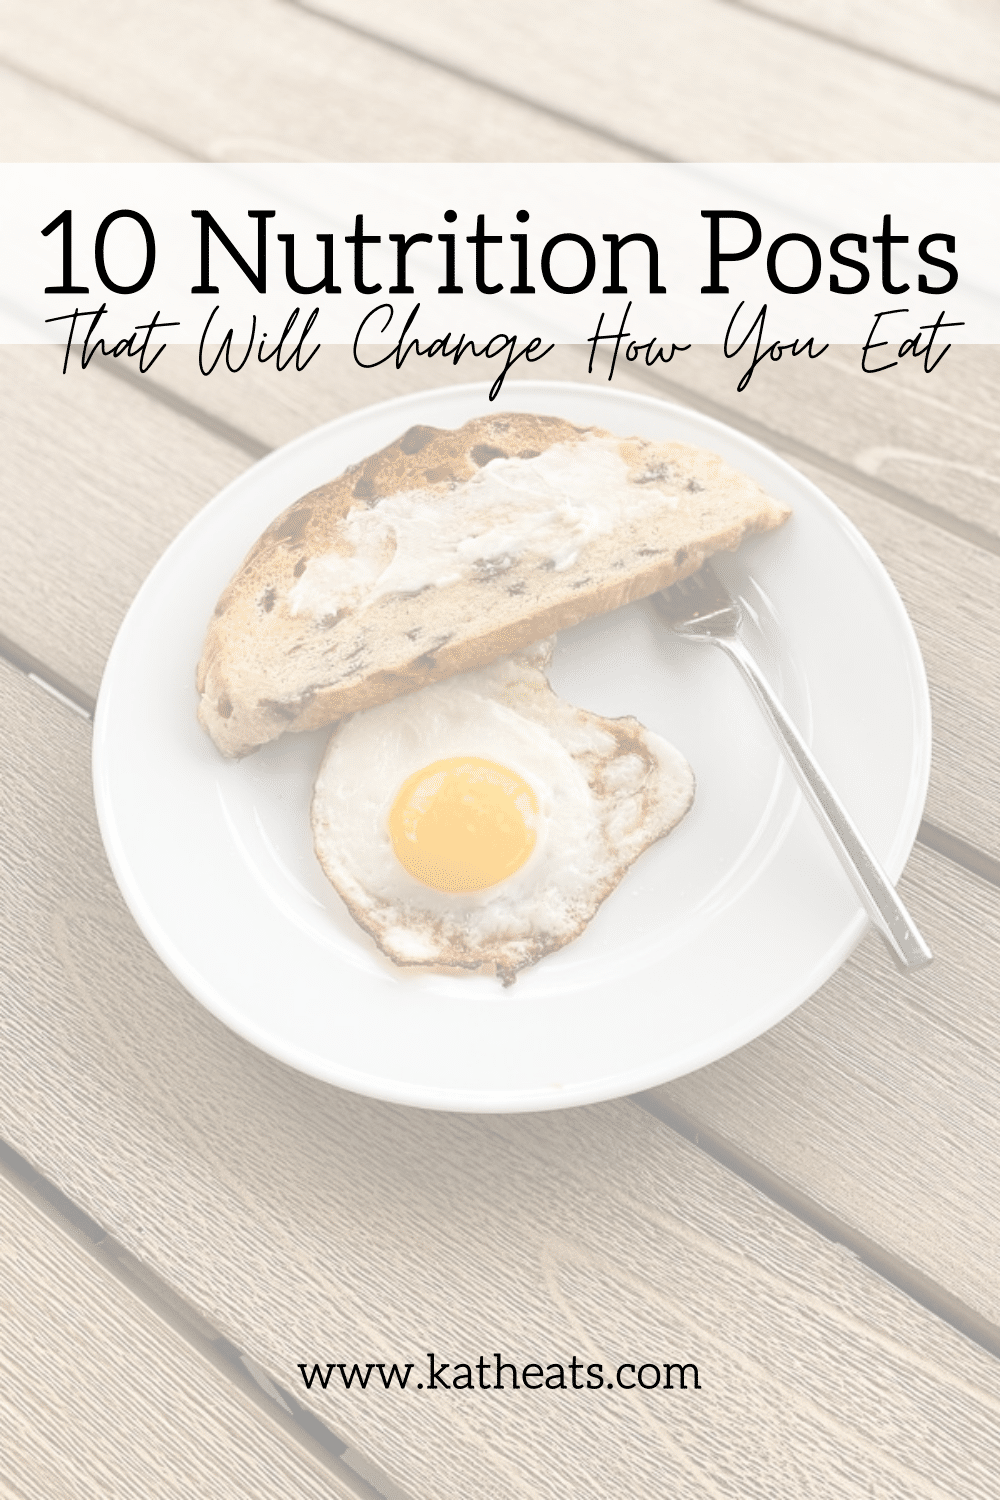 10 nutrition posts that will change how you eat graphic with eggs and toast in background